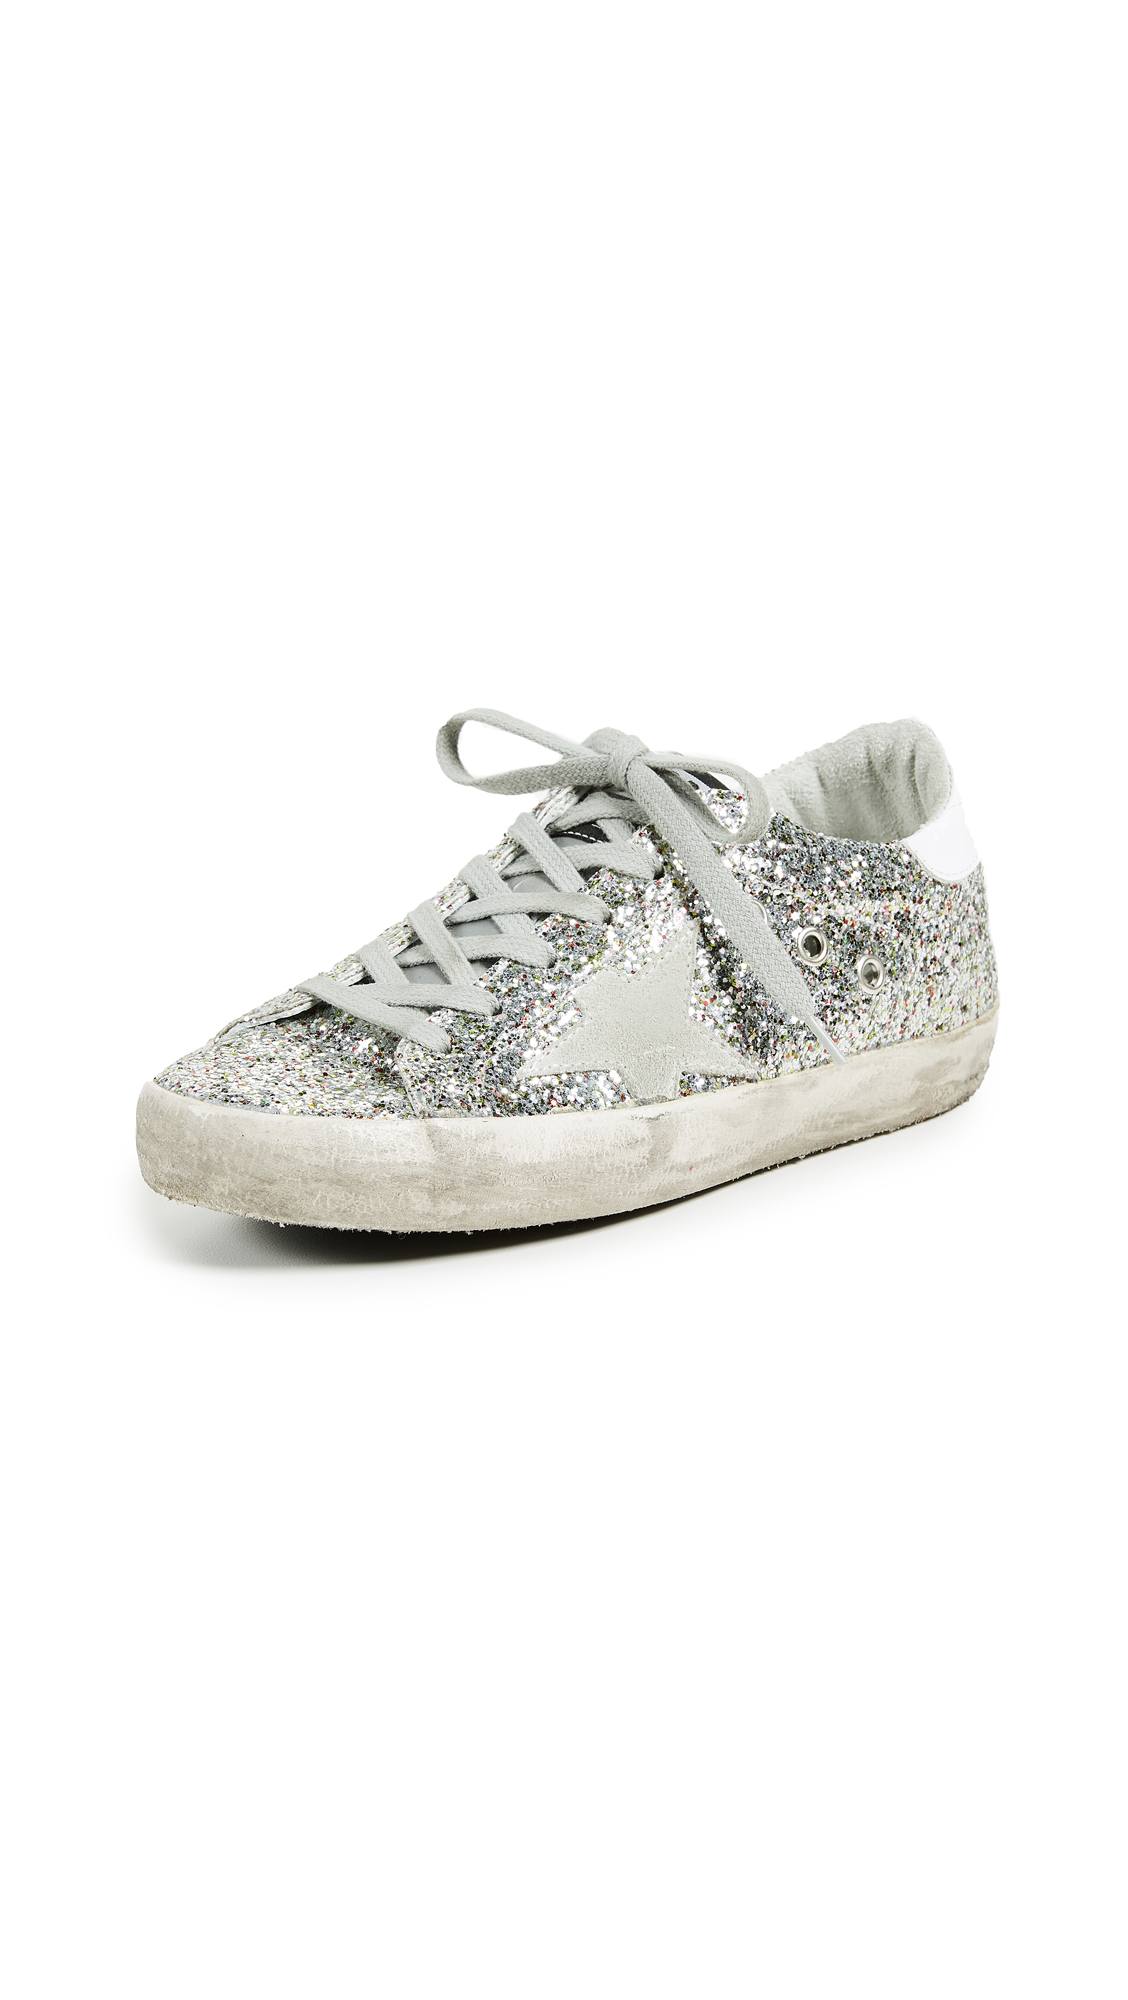 Golden Goose Superstar Sneakers - Multi Glitter